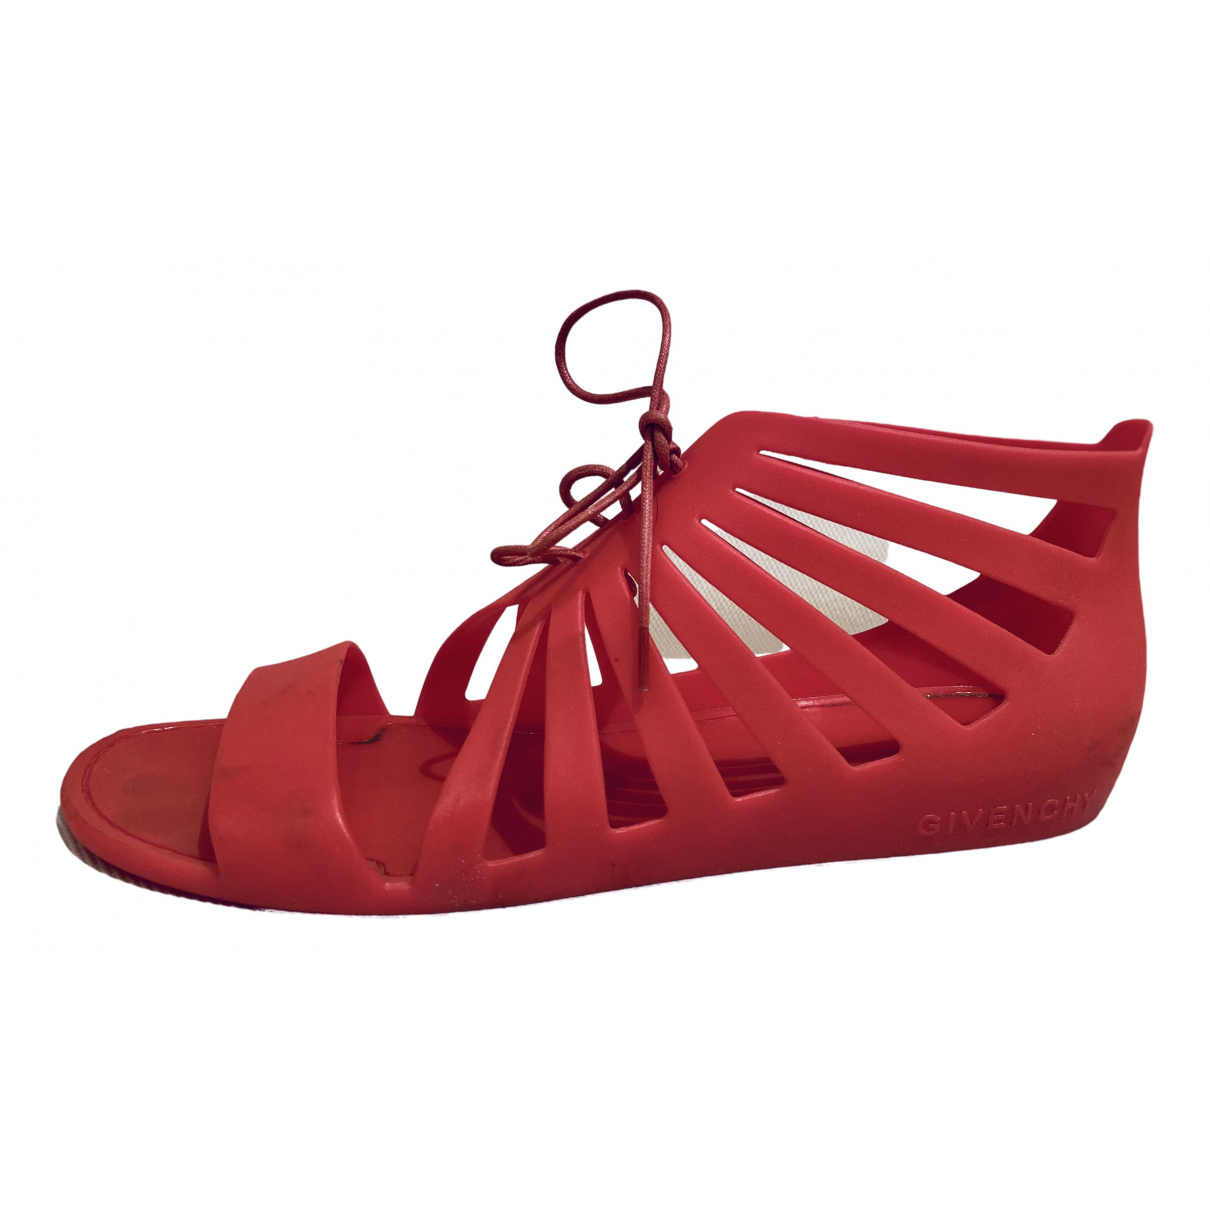 Givenchy N Pink Rubber Sandals for Women 40 IT